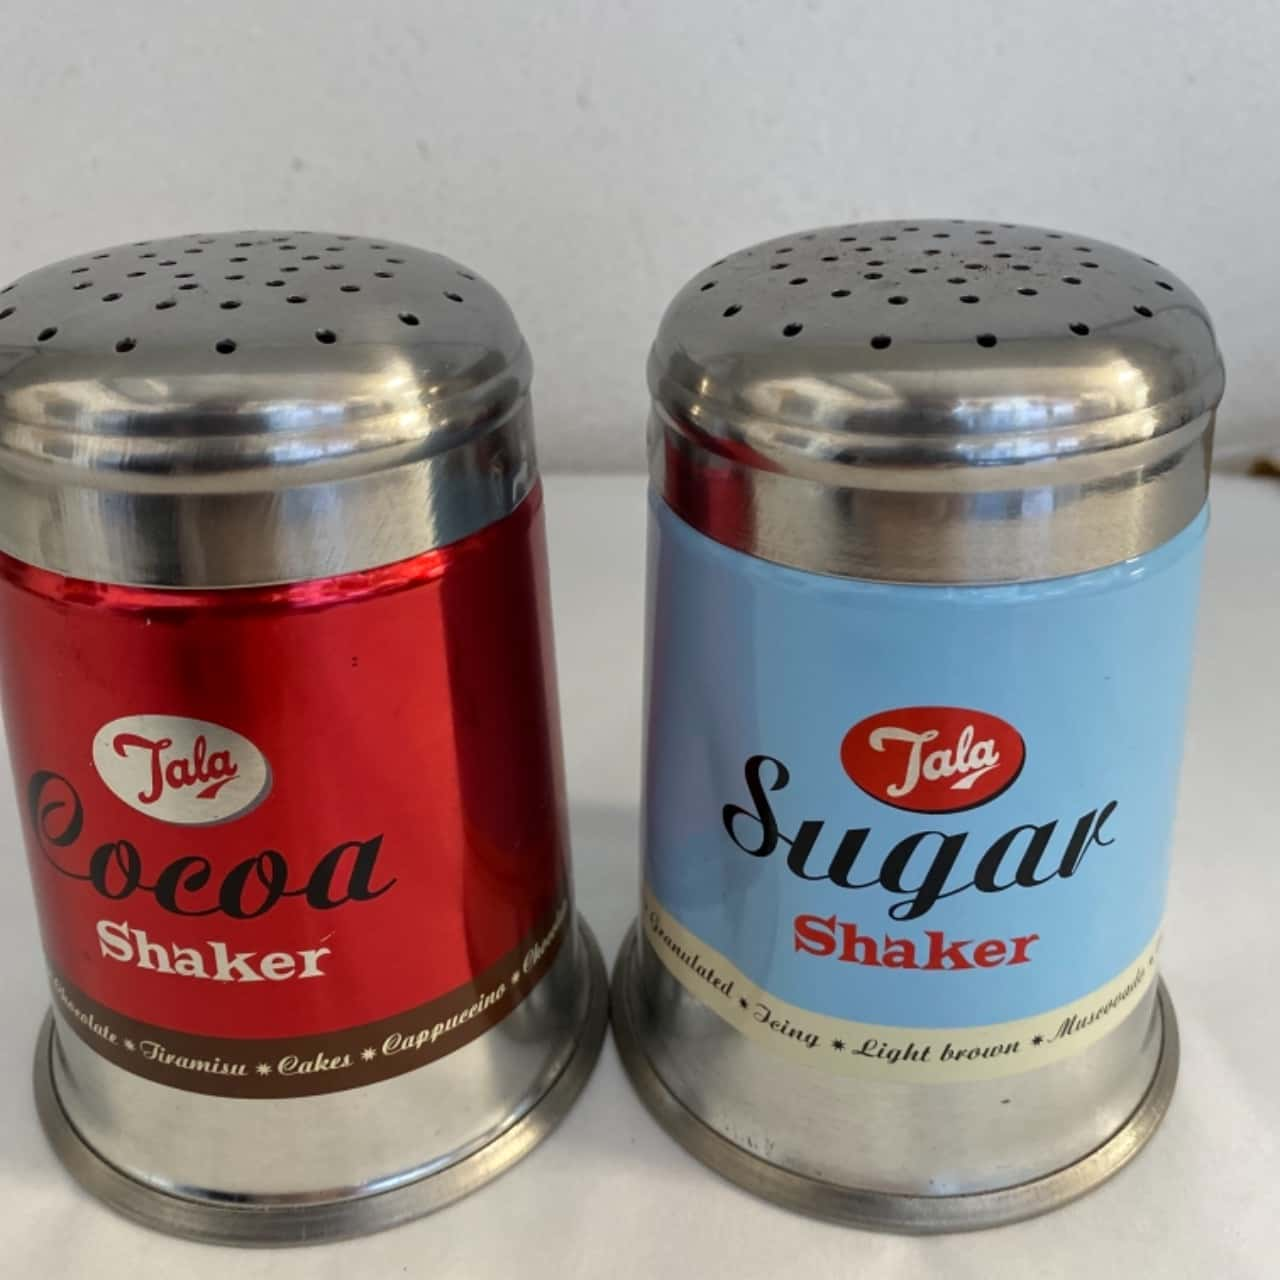 Vintage style shakers